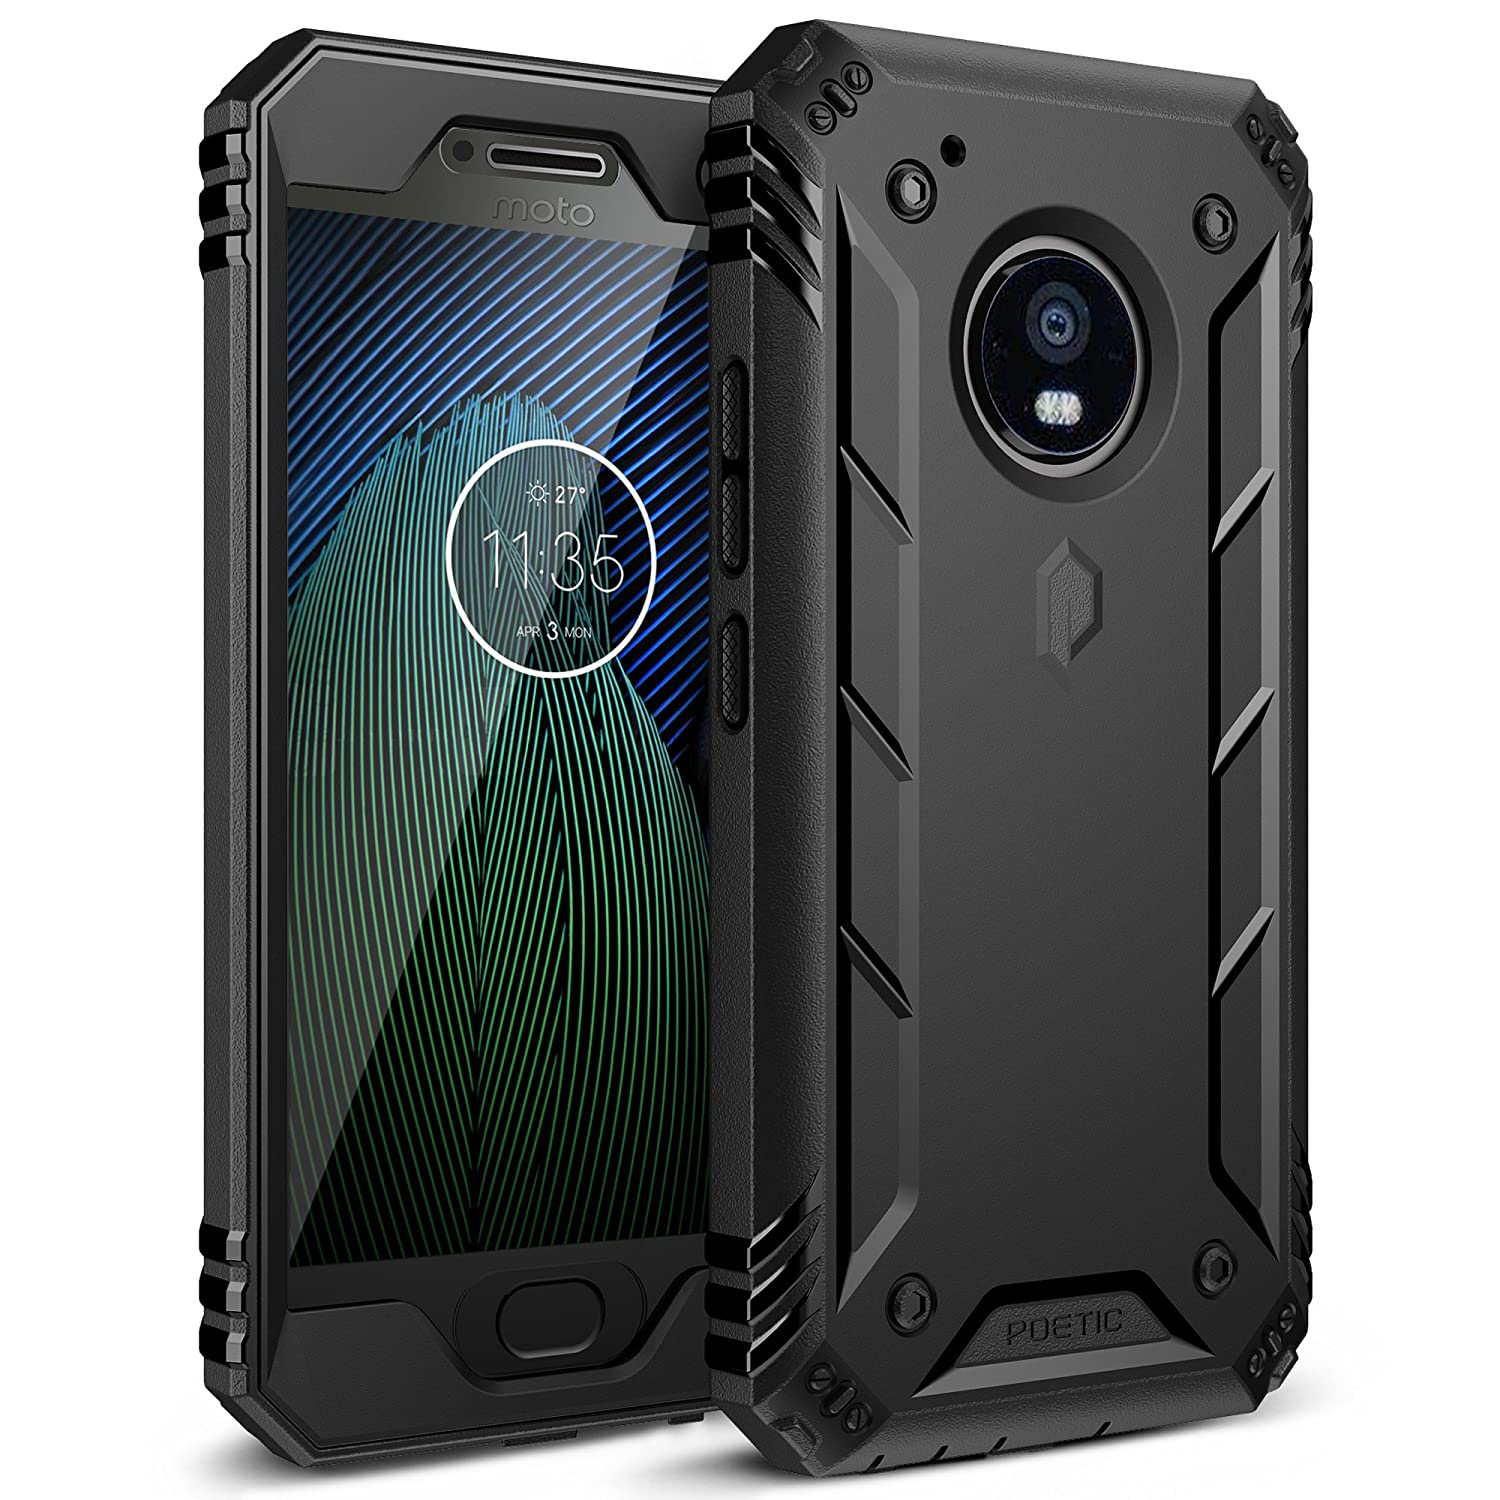 Poetic Moto G5 Plus Rugged Case, Revolution Full-Body with Hybrid Heavy Duty Protection [Built-in Screen Protector] for Motorola Moto G5 Plus (2017) ...